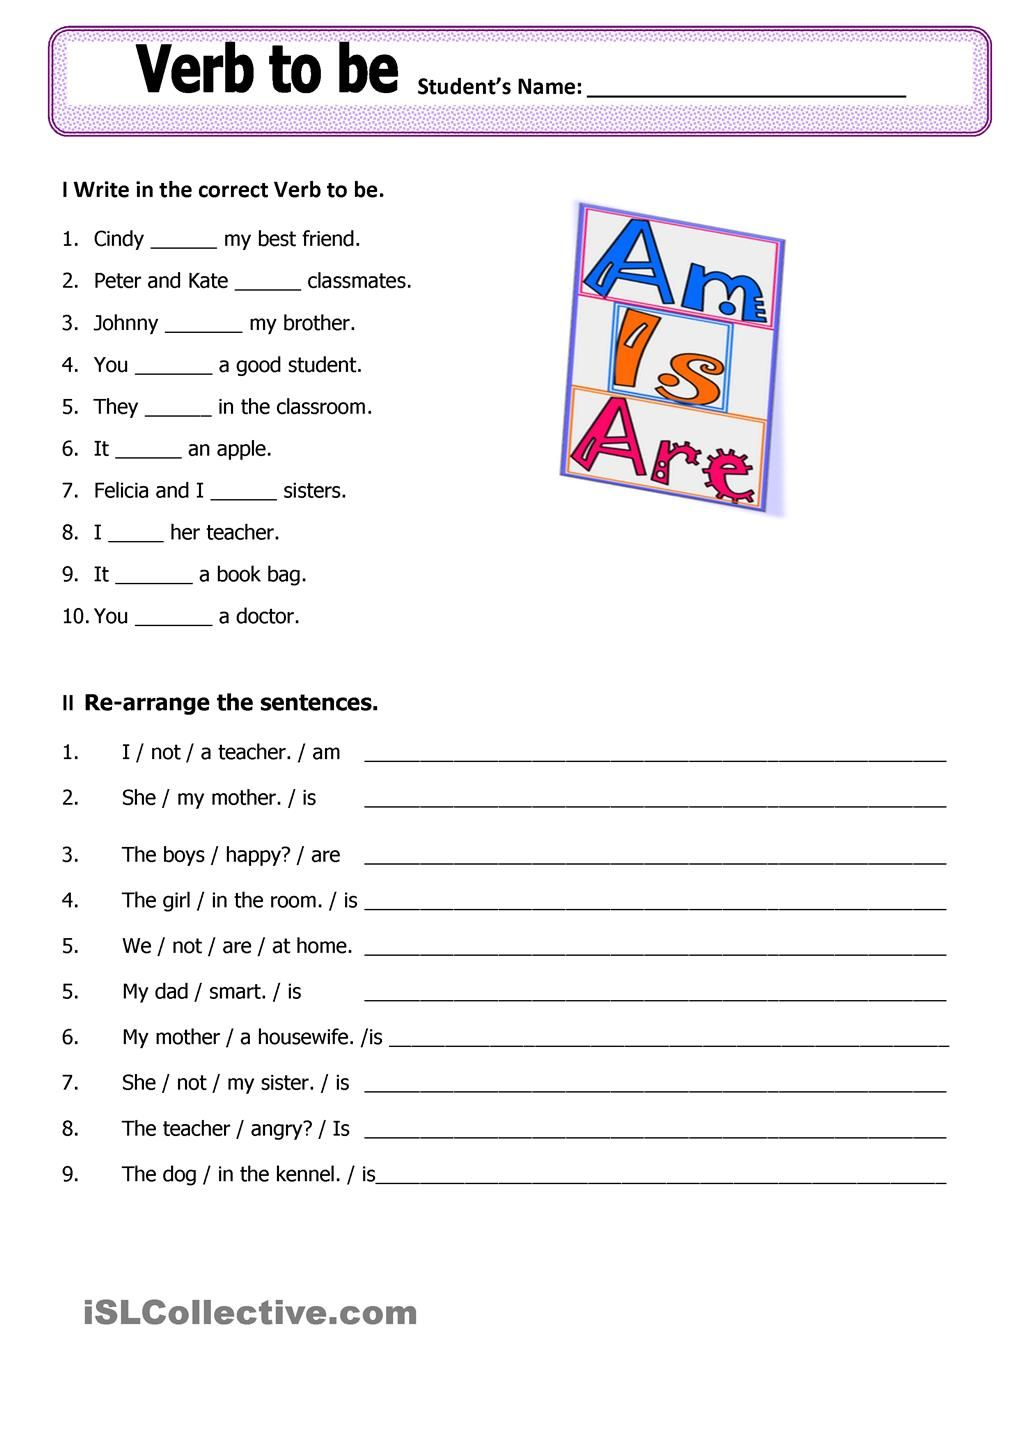 Libros Ingles Nivel Basico Free Esl Efl Printable Worksheets And Handouts English World